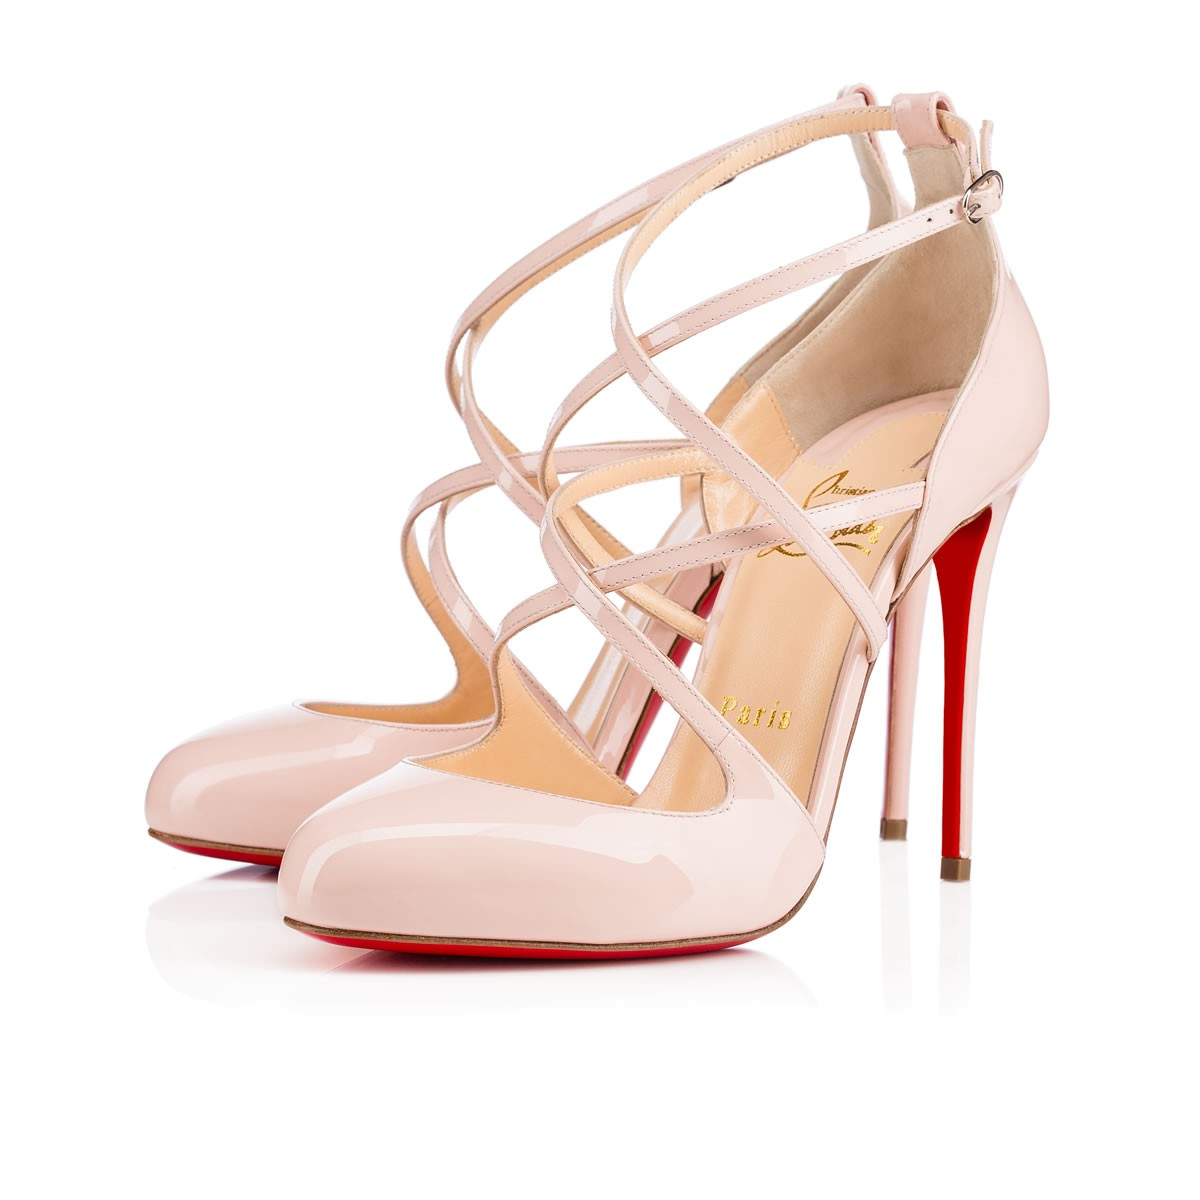 christian louboutin come si pronuncia